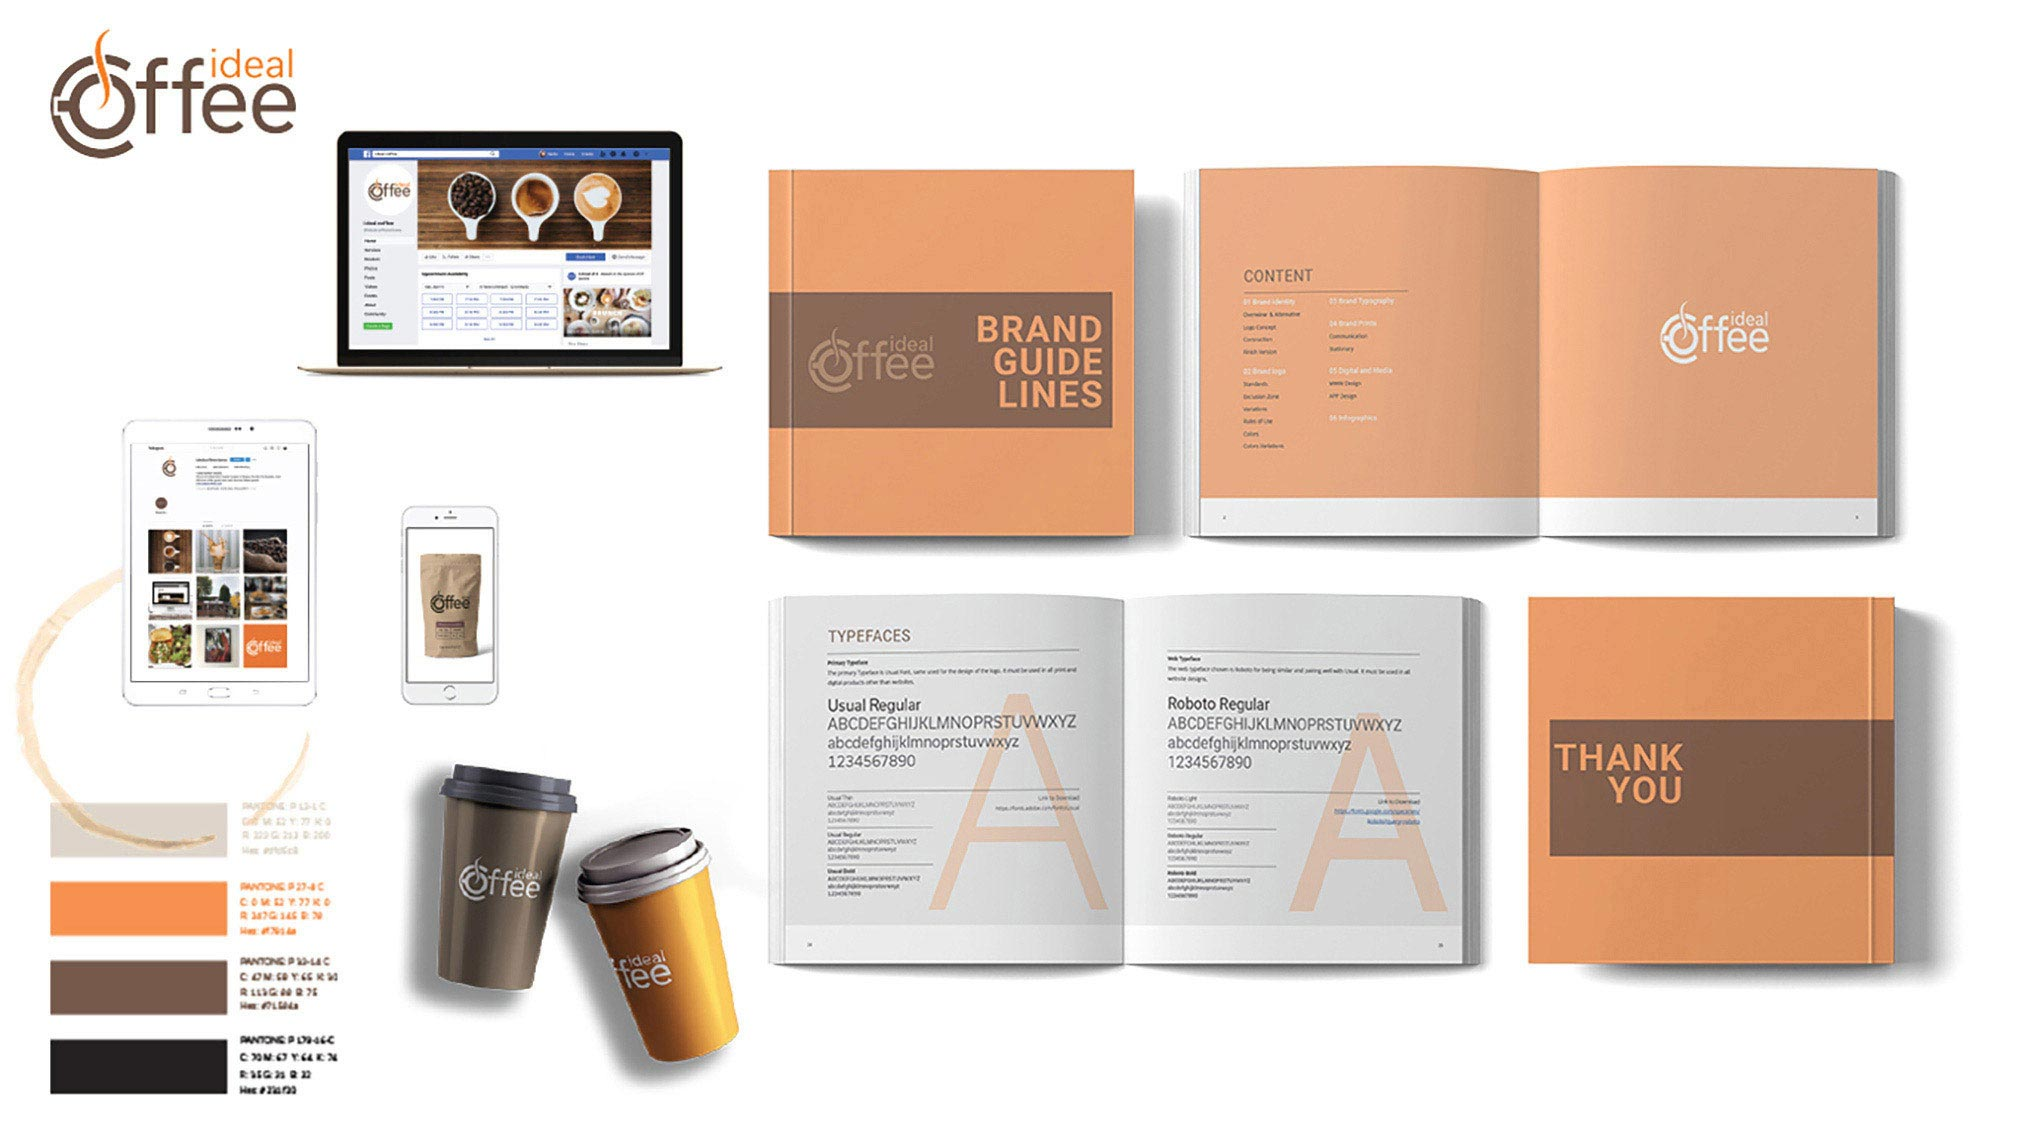 Brand Guidelines and Logo Redesign for Ideal Coffee